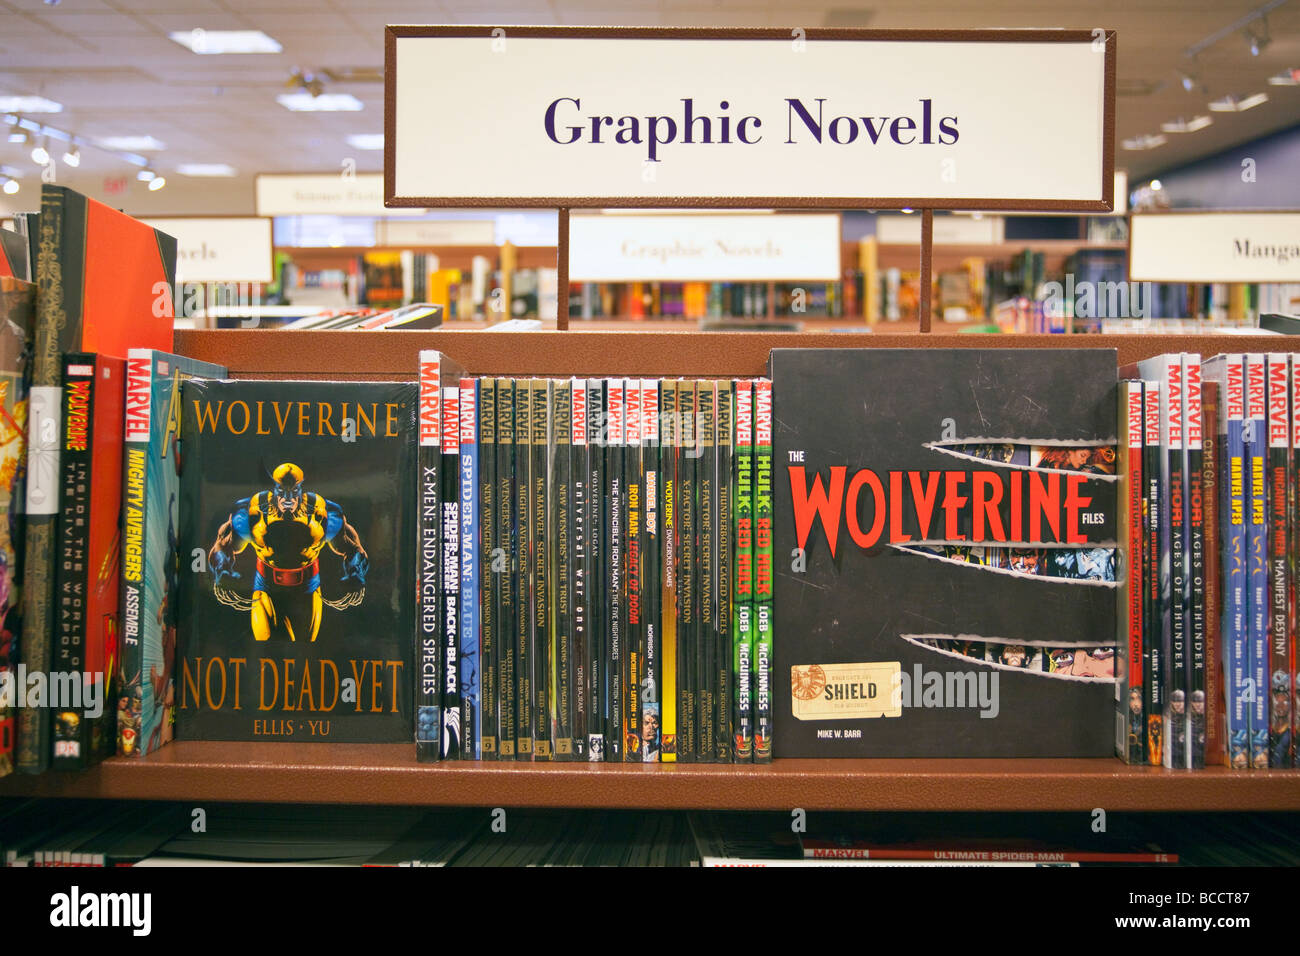 graphic novels on shelves, Chapters Bookstore, Coquitlam, BC, Canada - Stock Image